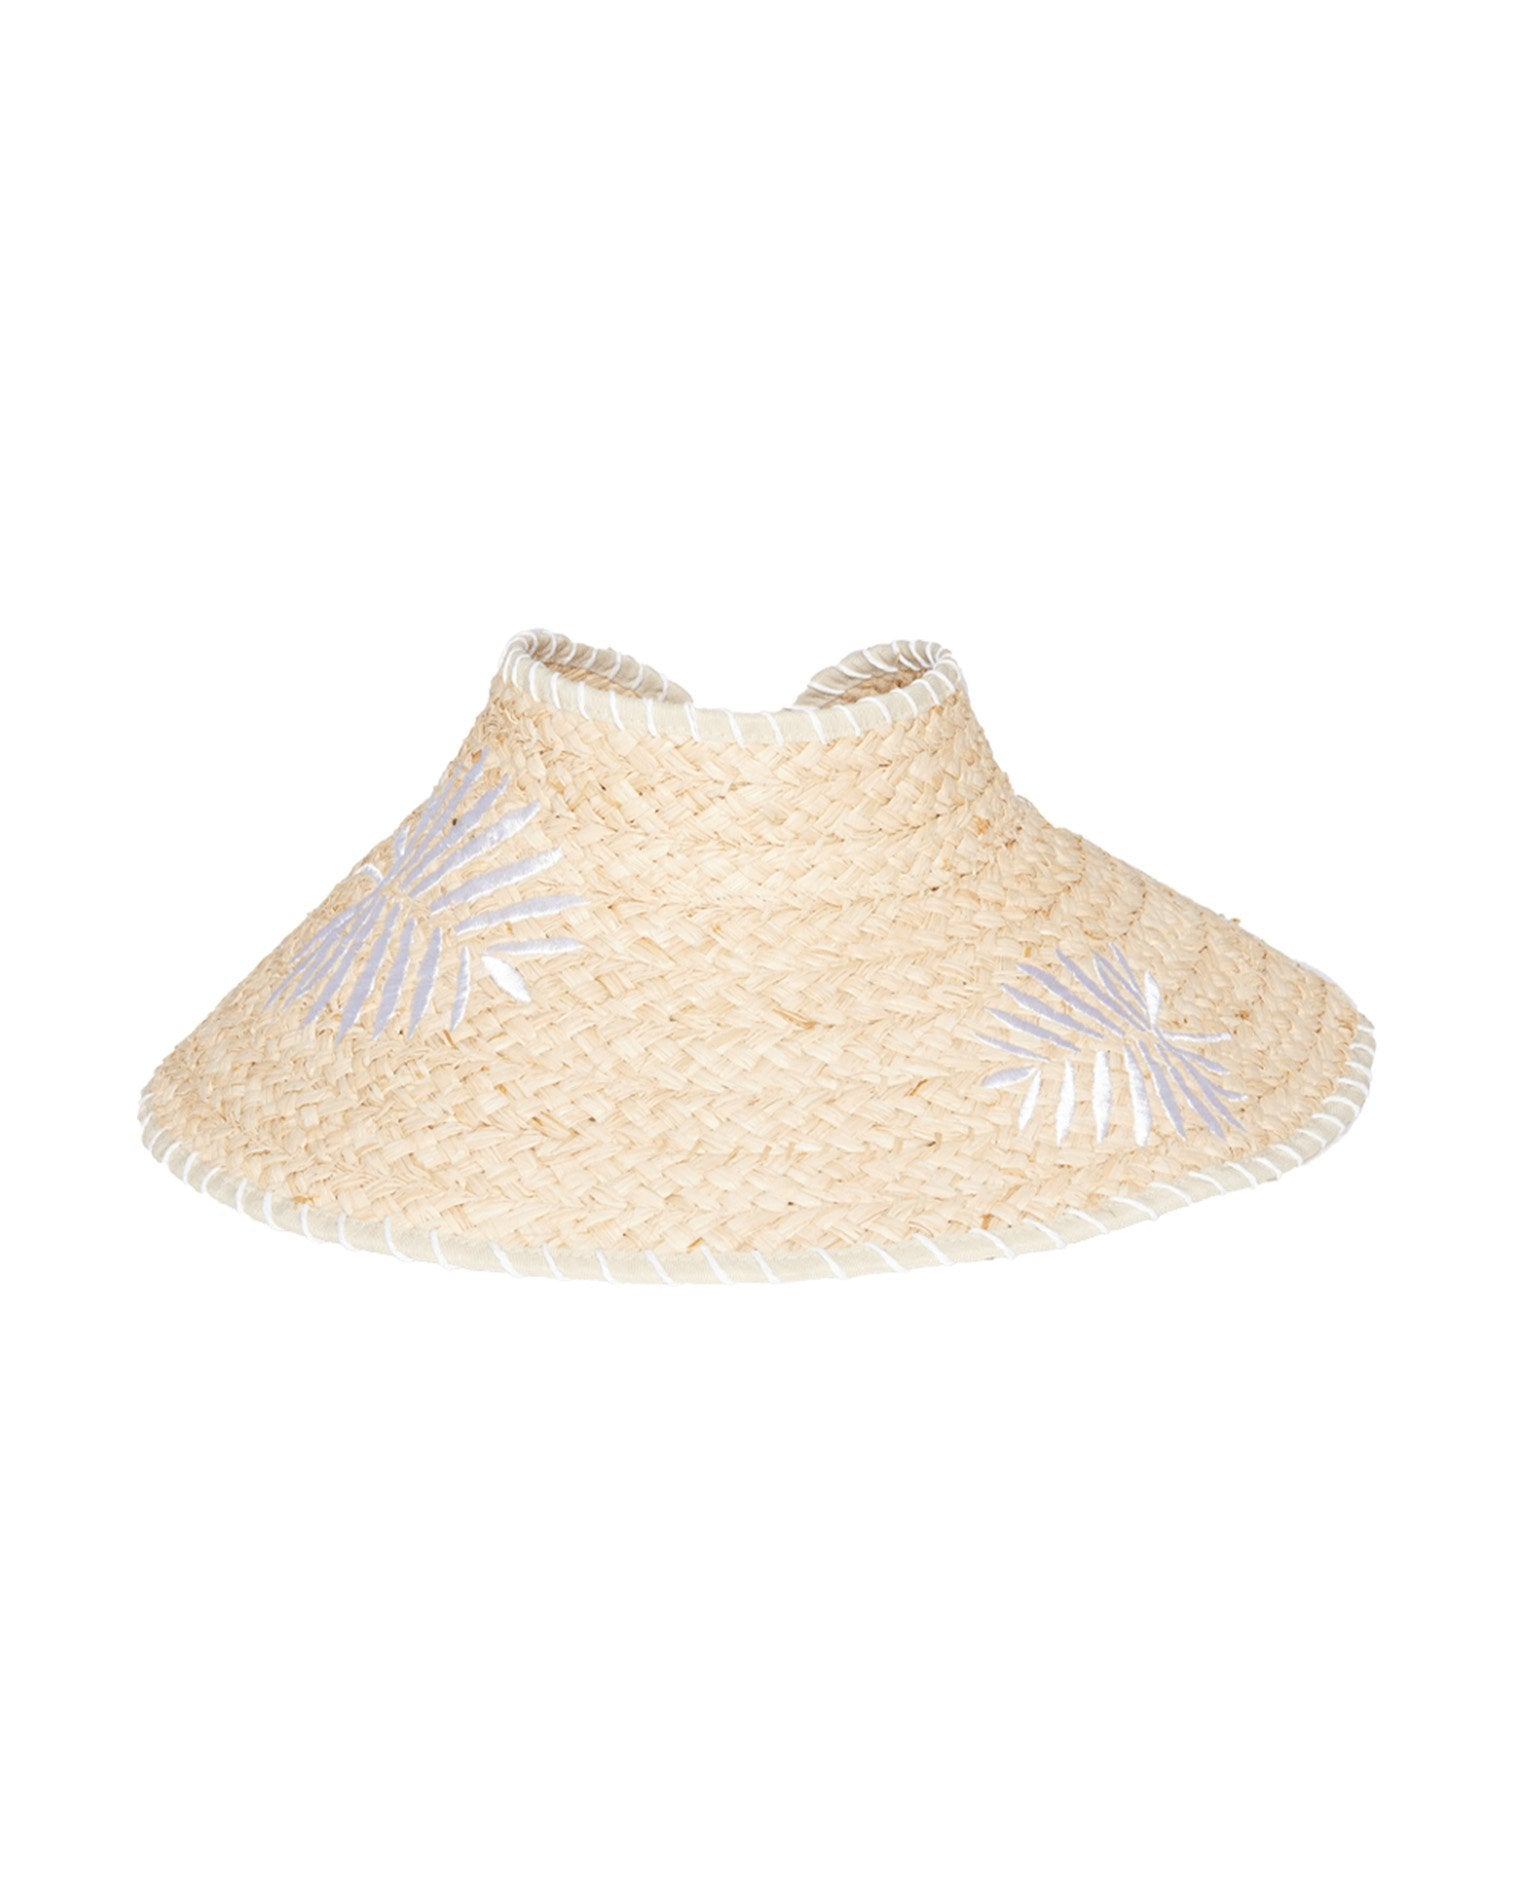 L*Space Palma Roll Up Sun Hat